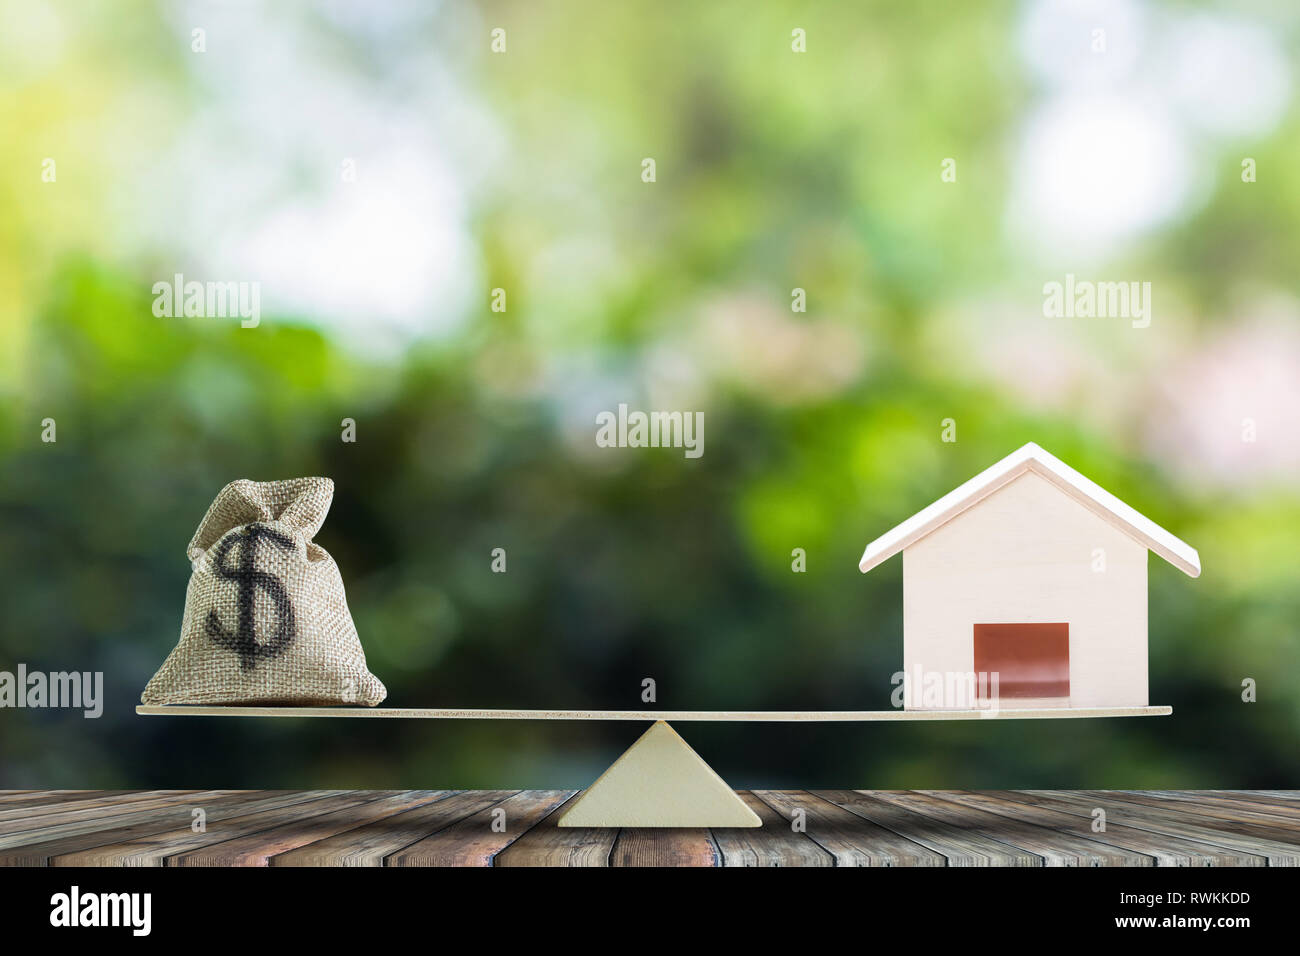 Home loan, home to money, Change real estate into cash concept. US Dollar in sack bag, Wooden house model on balance scales on wood table. Balance hom - Stock Image